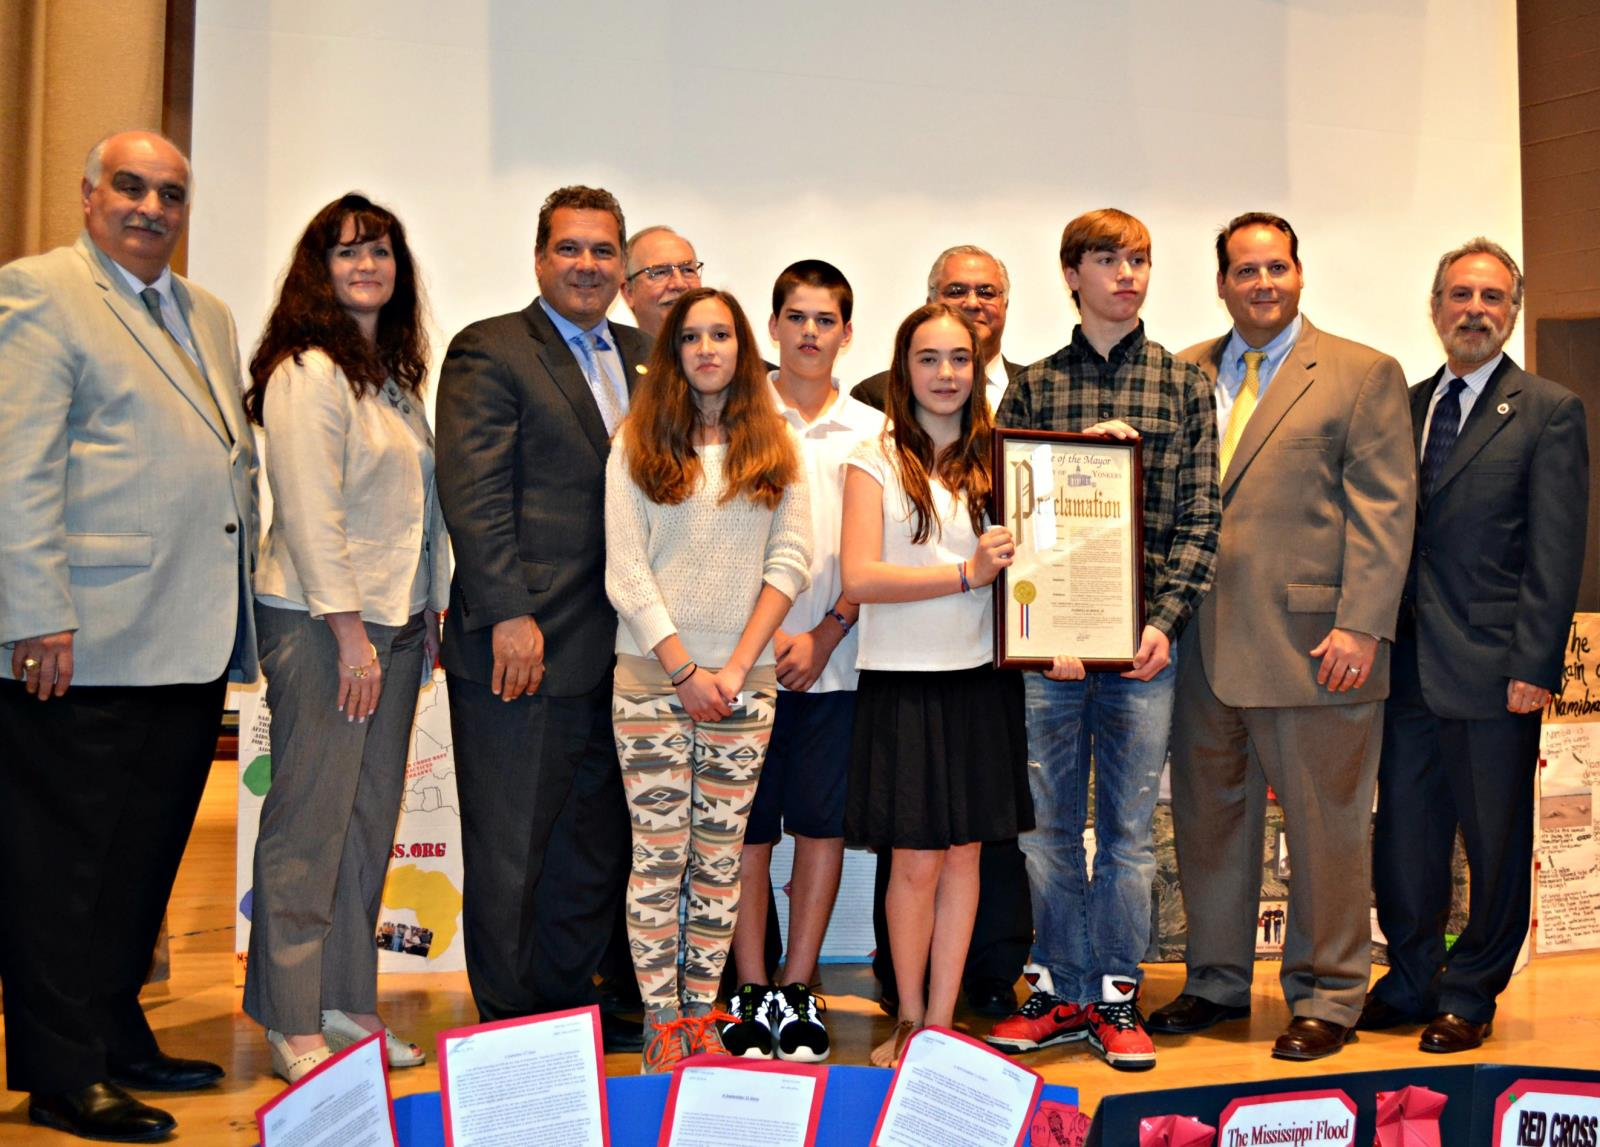 Mayor Spano names Paideia School 15 May 2014 School of the Month